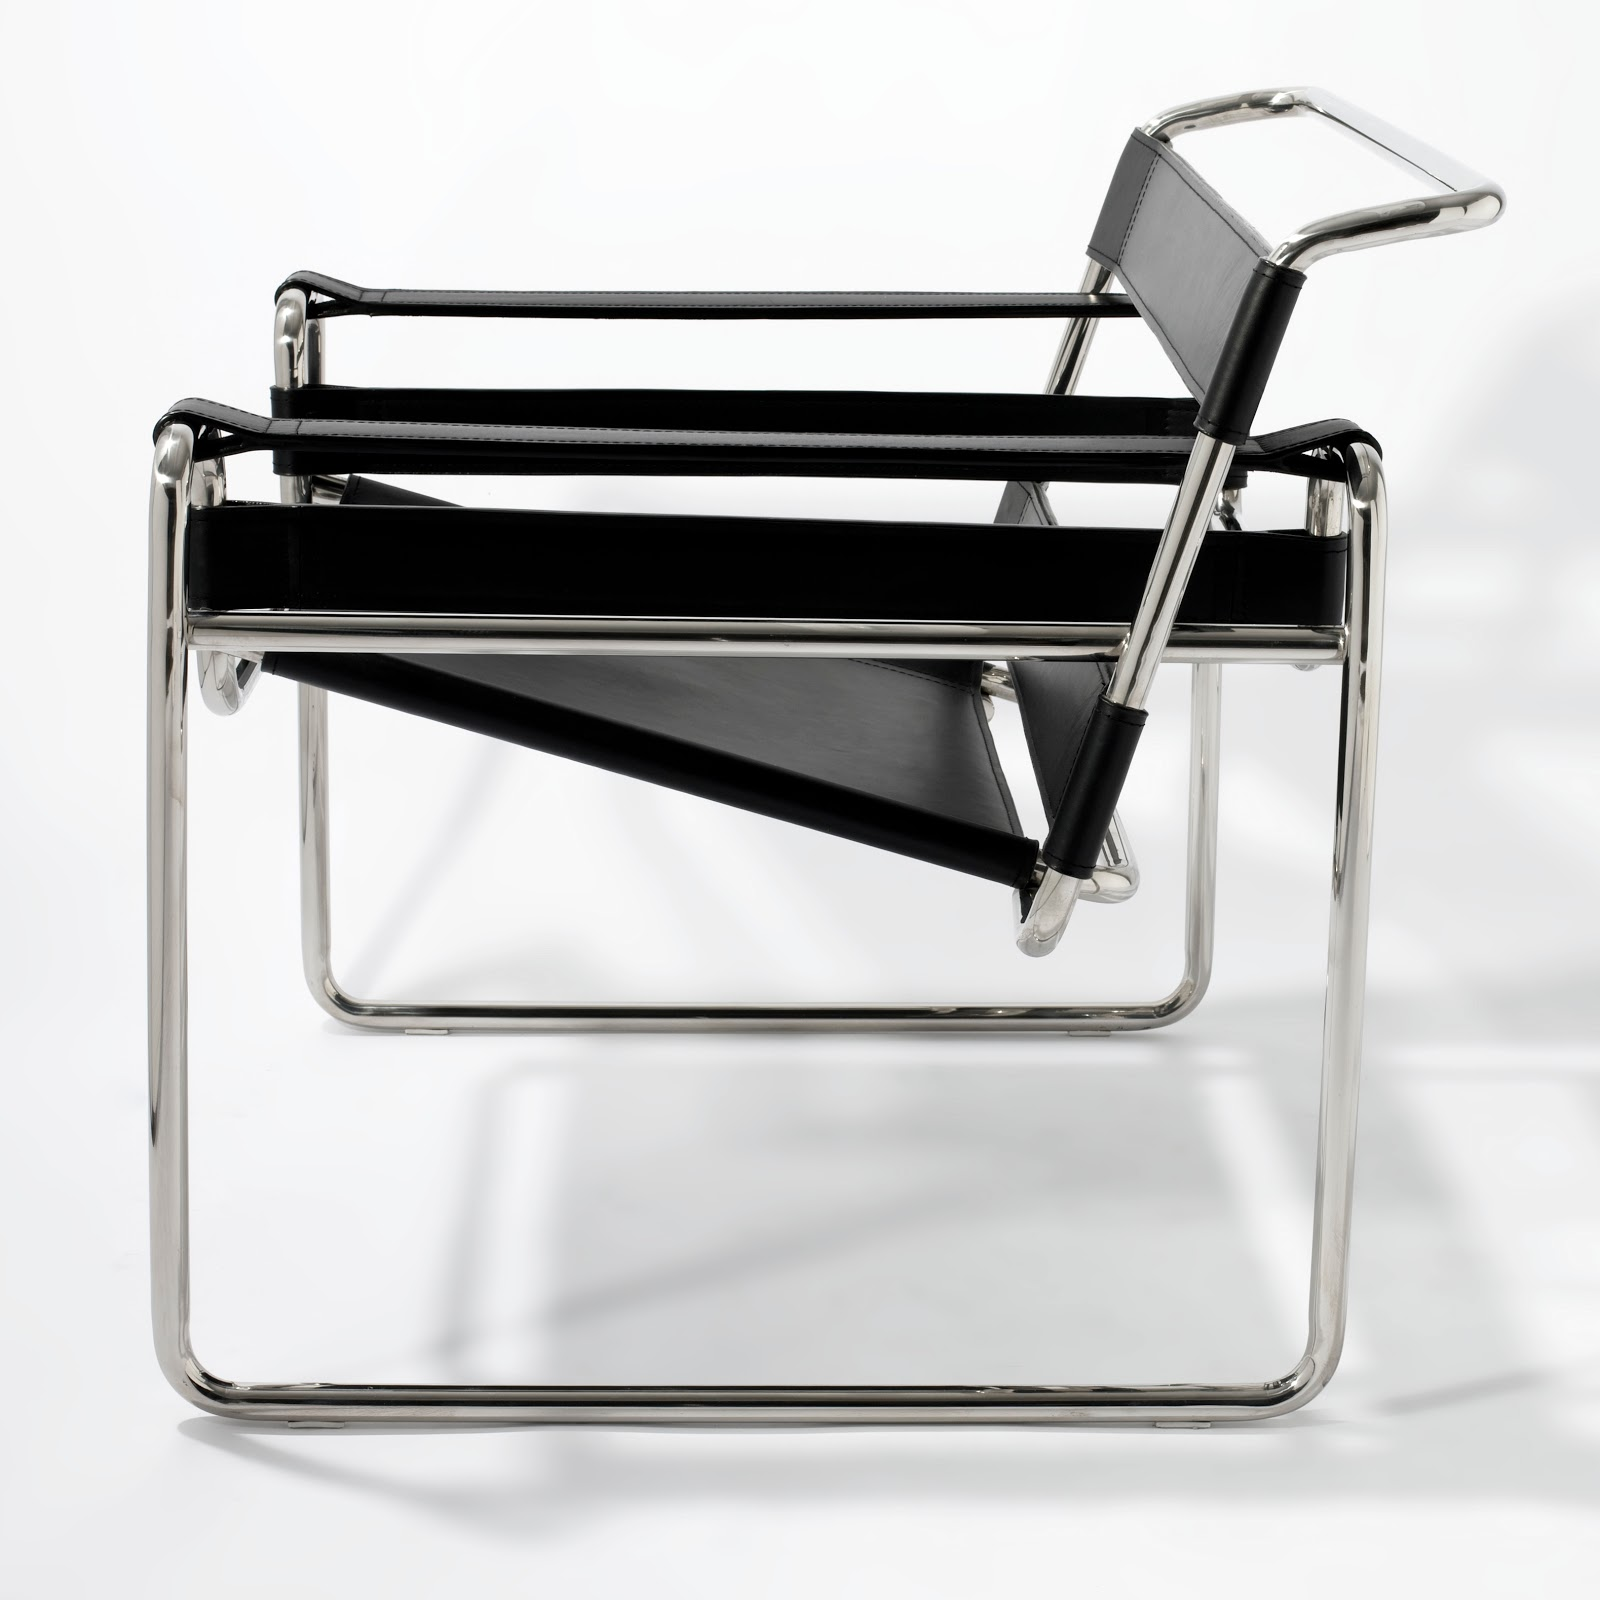 Bauhaus Lounge Chairs - The wassily chair designed by marcel breuer at bauhaus